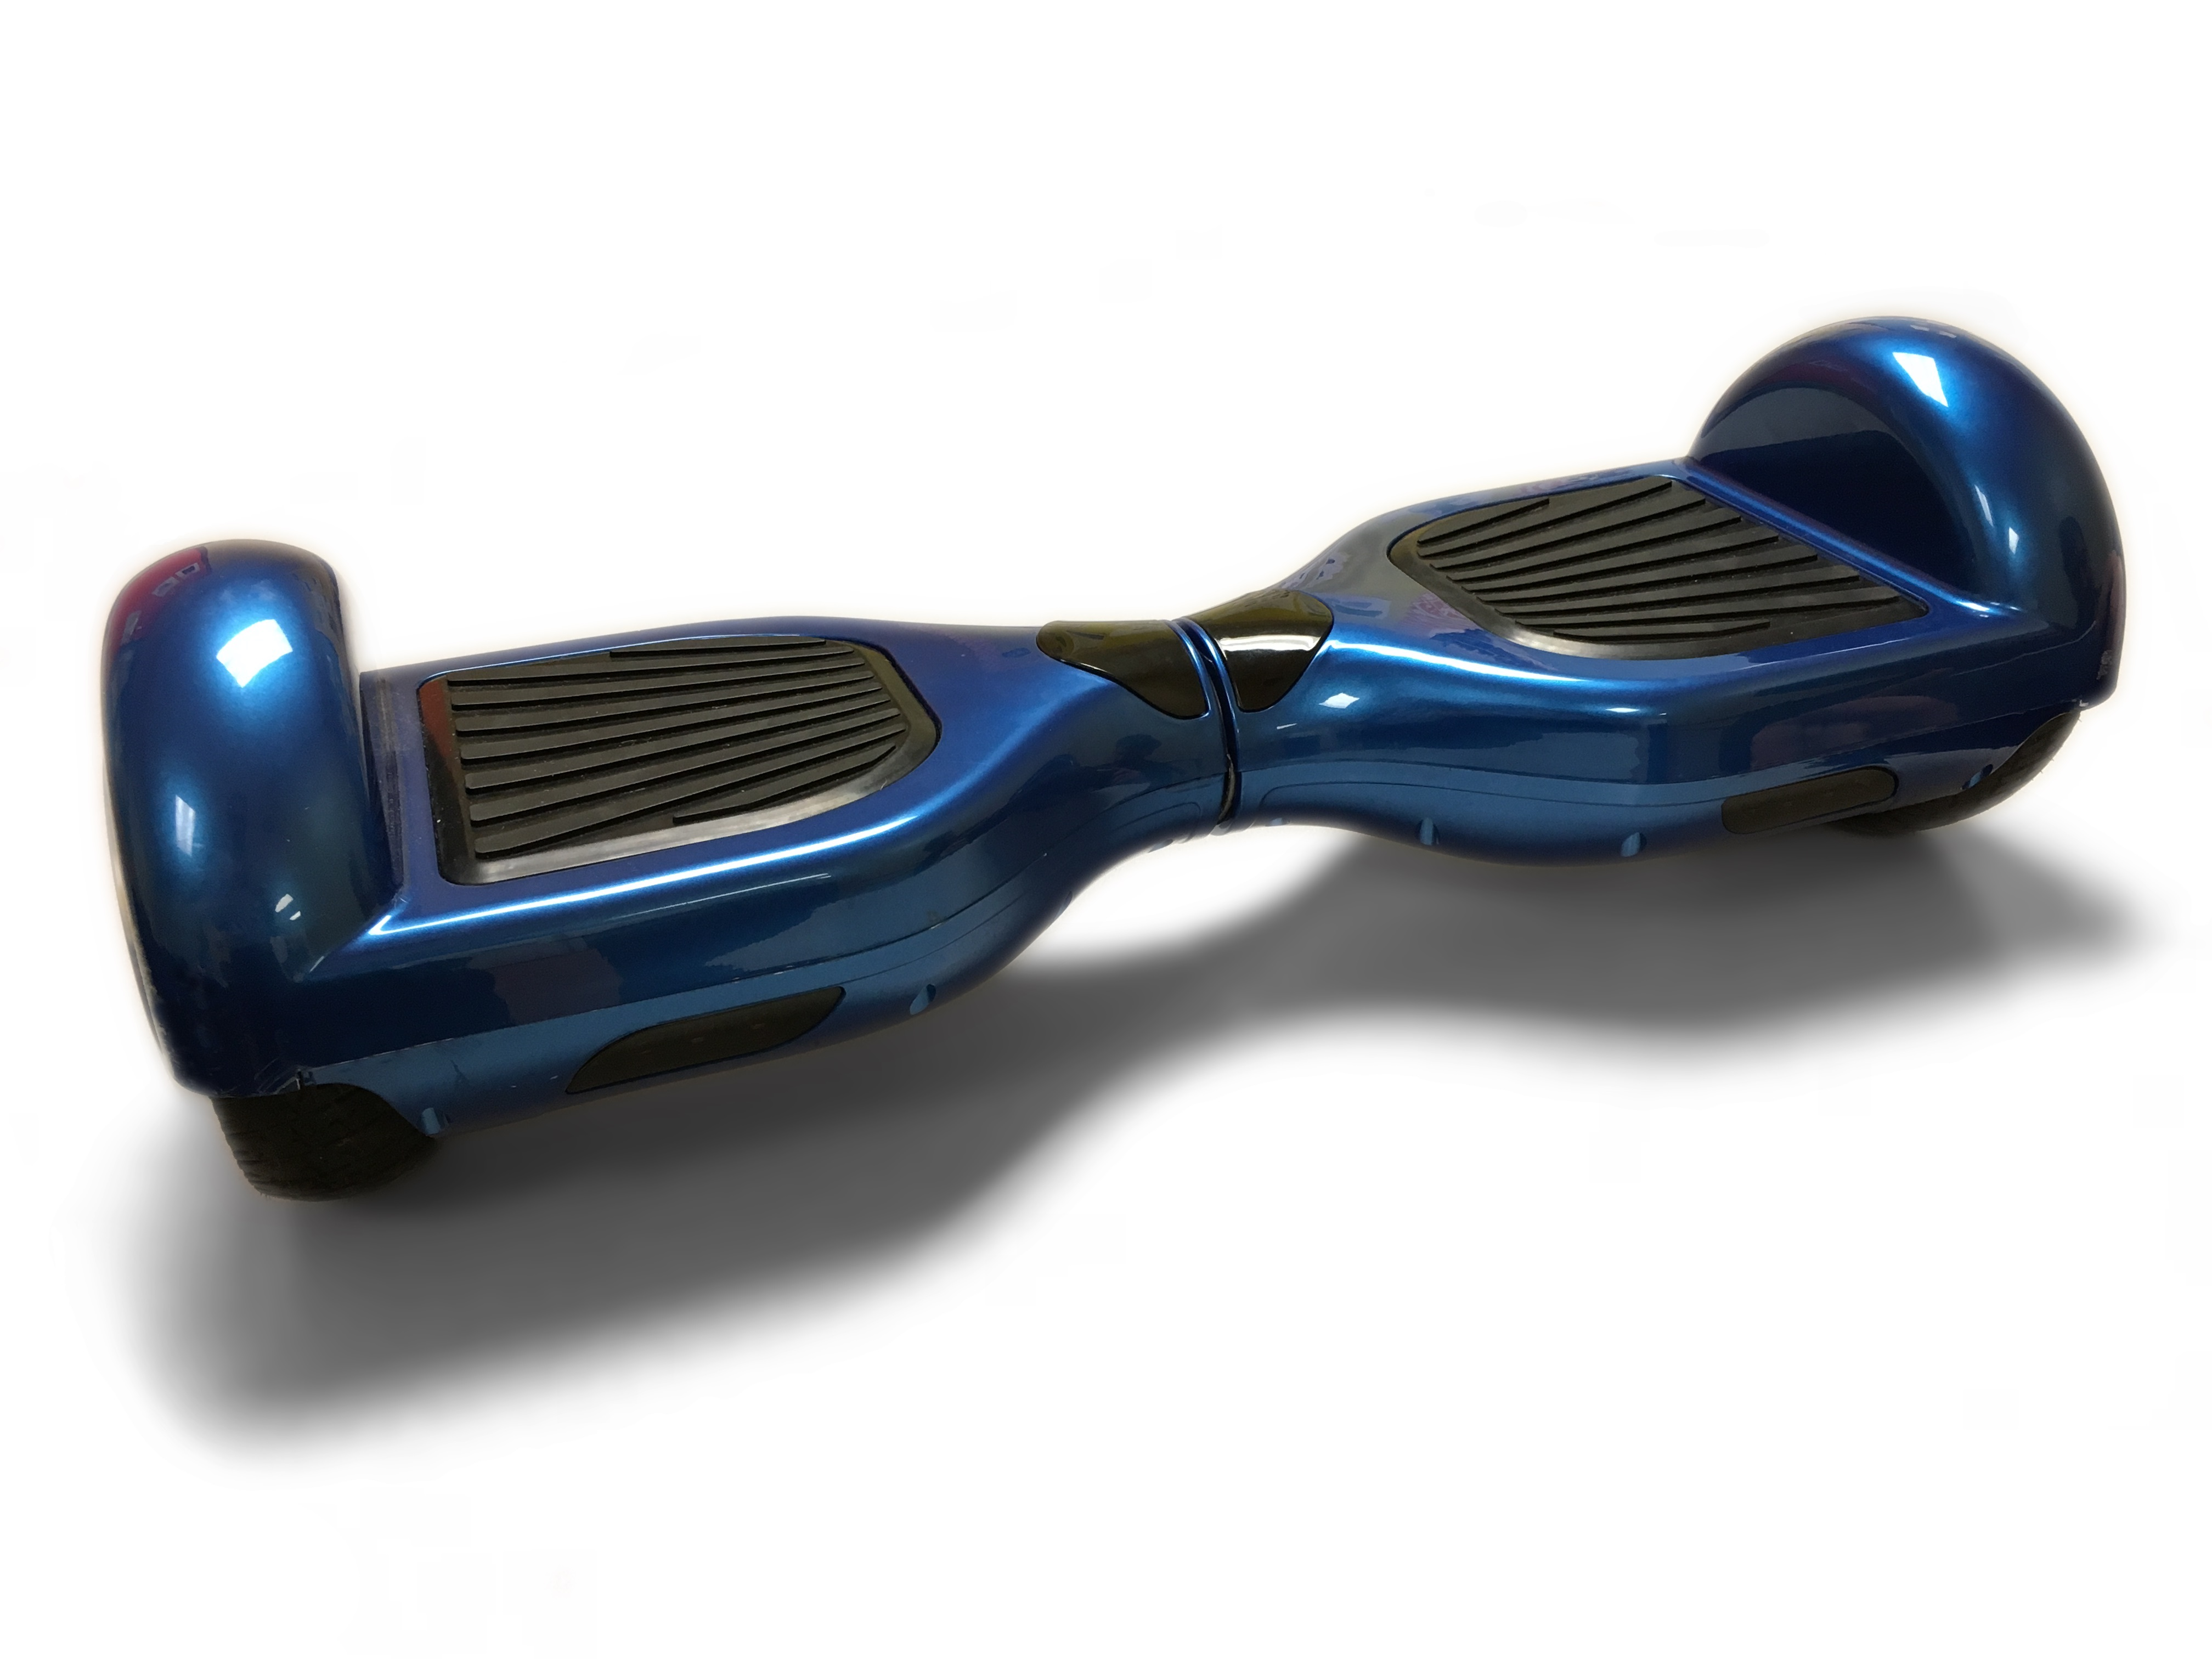 a blue hoverboard on a white background from wikimedia